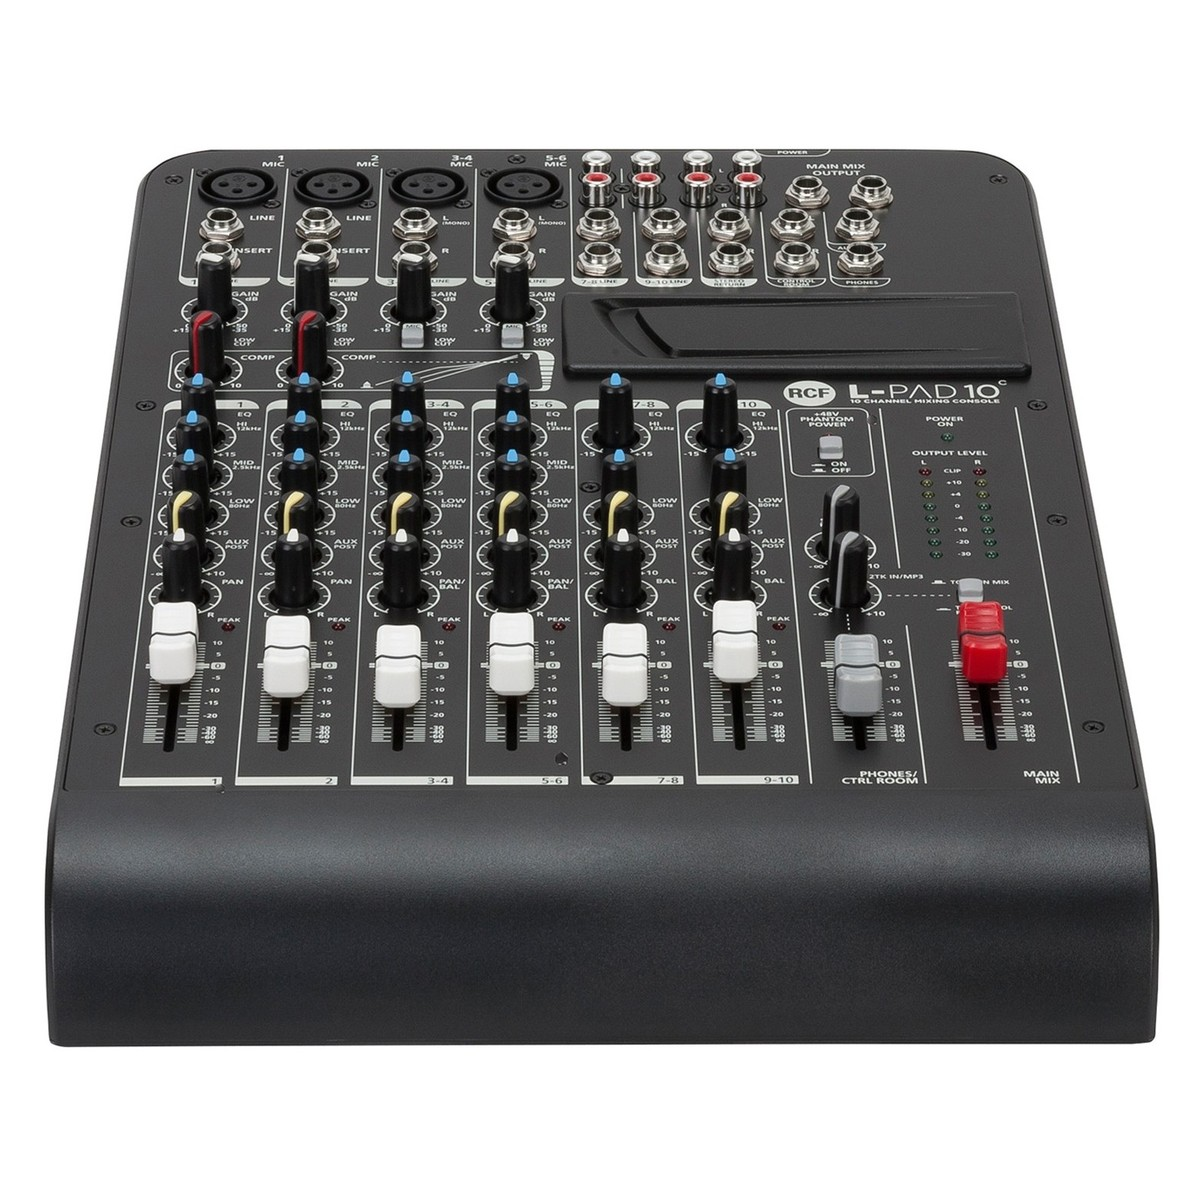 Rcf lpad10c audio channel 10 table de mixage analogique - Table de mixage virtuel gratuit en francais ...